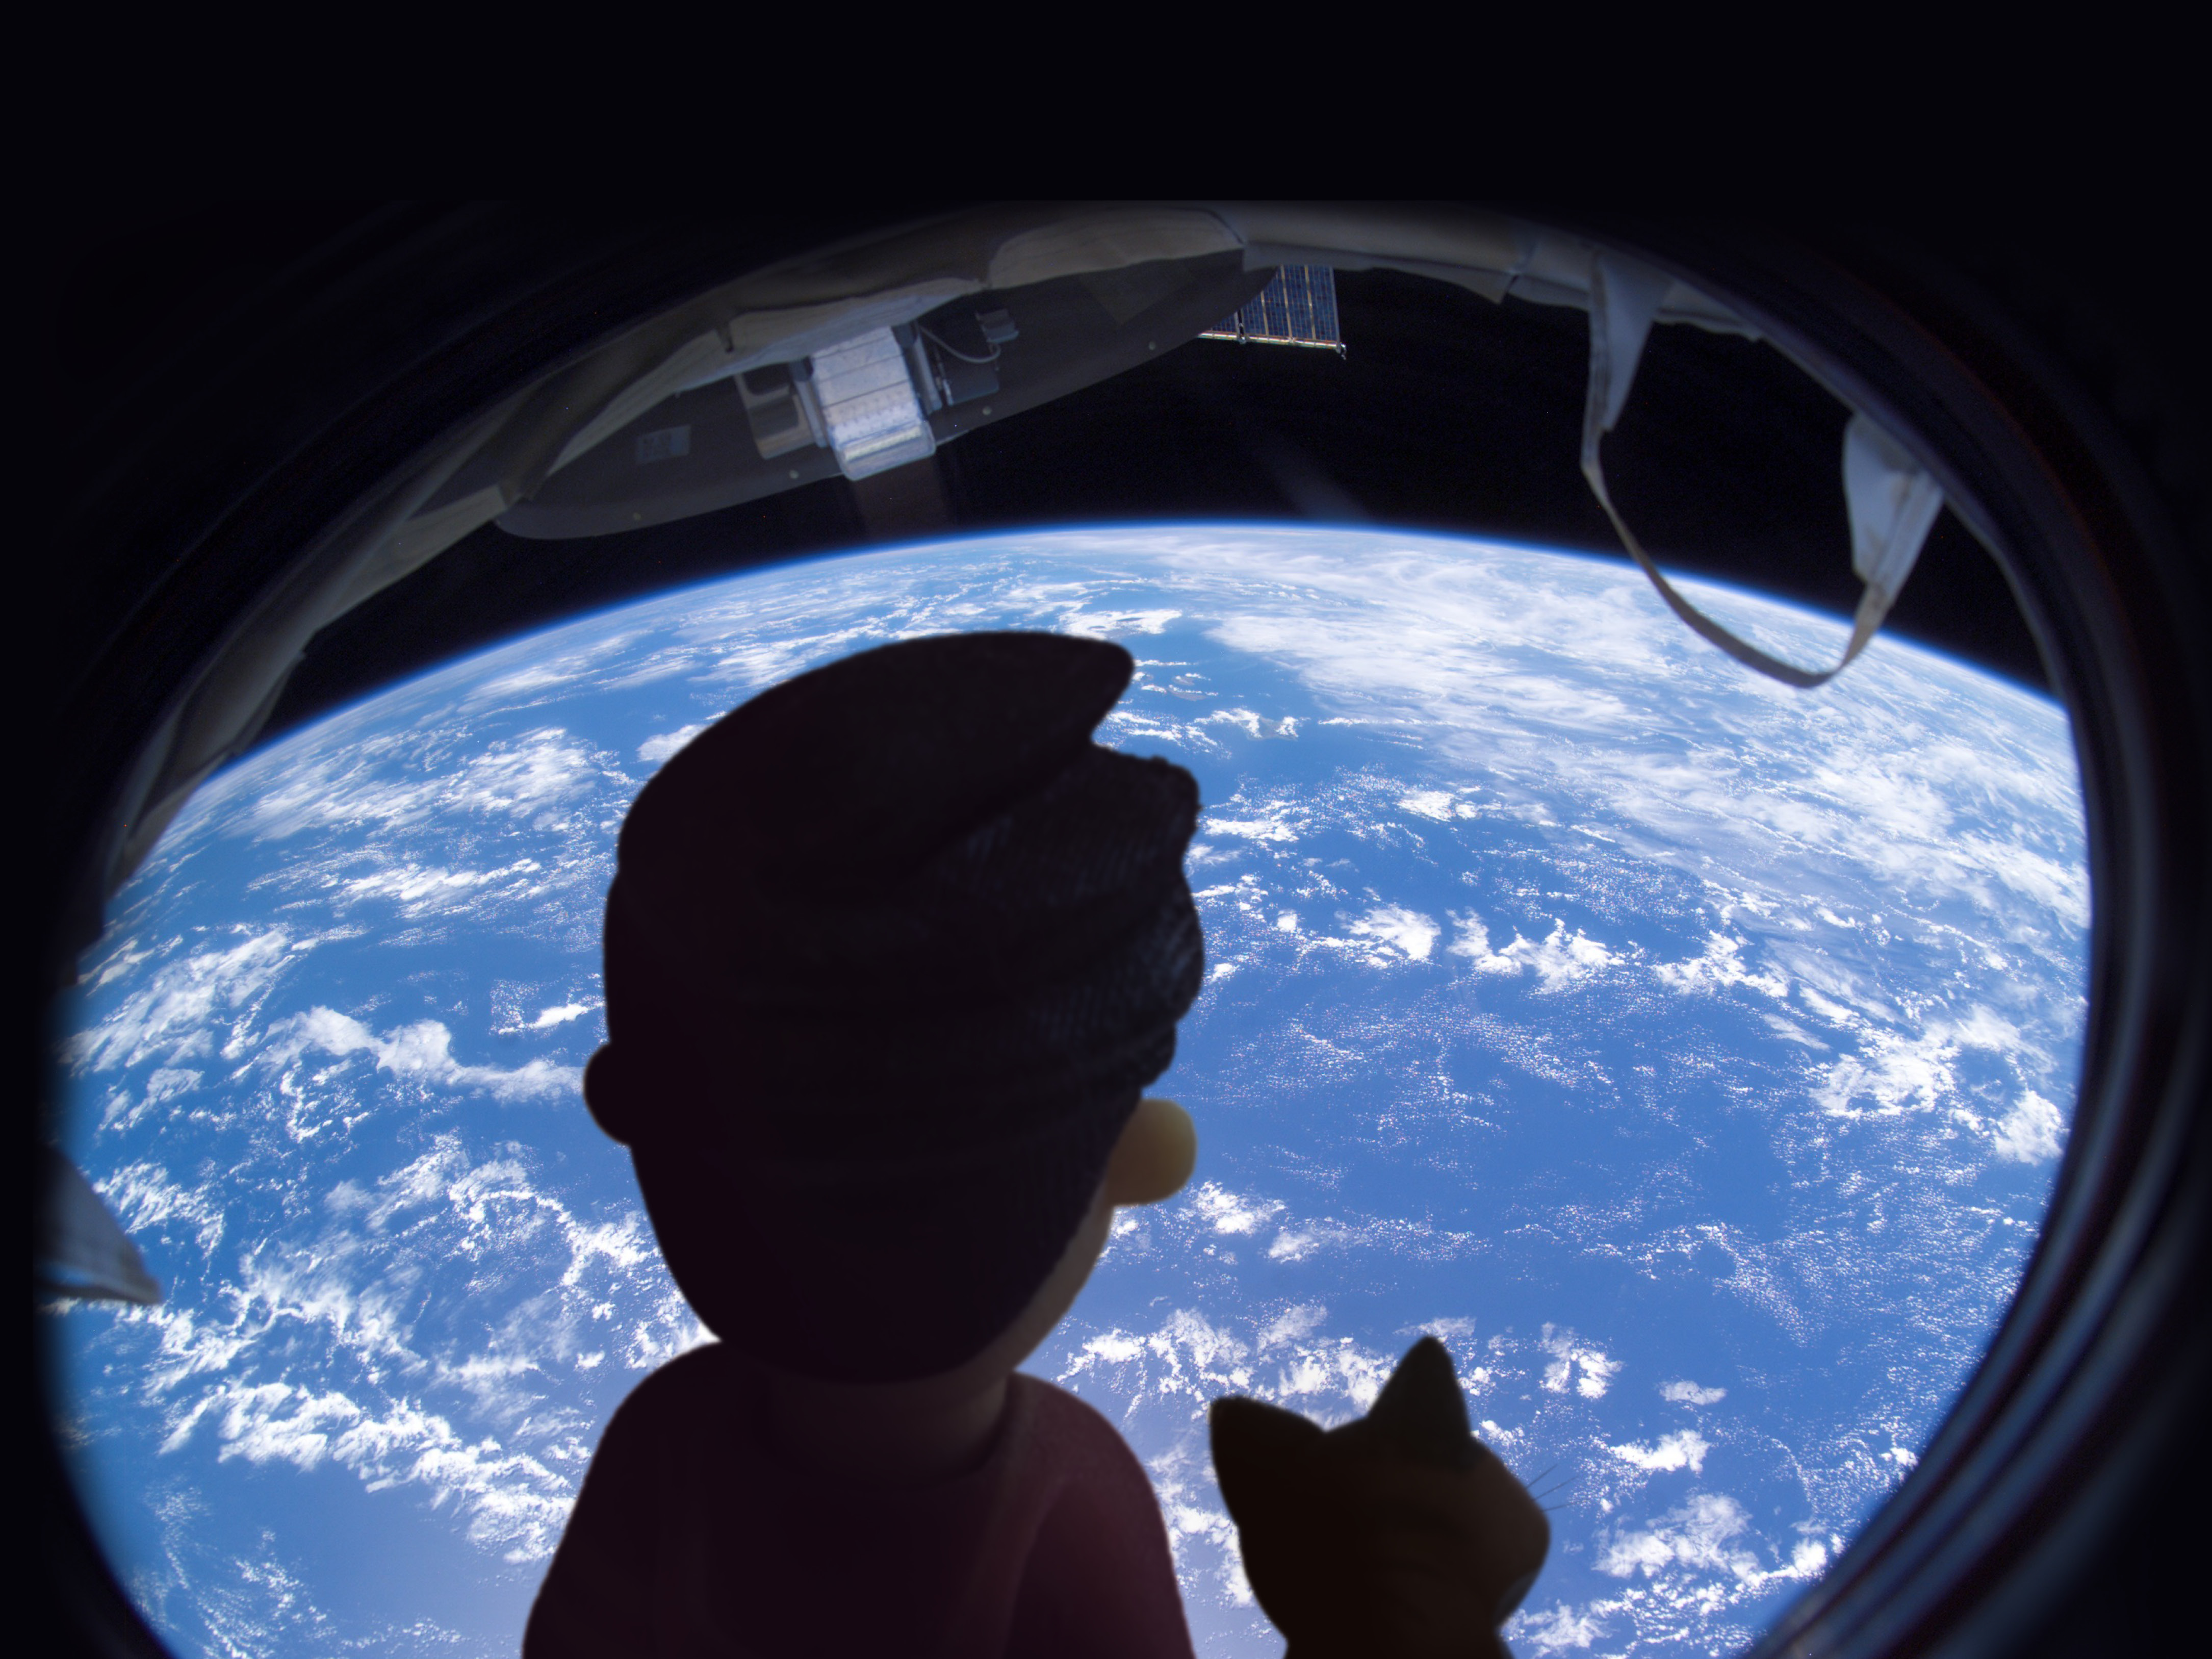 Little James and MiaKat look down at Earth from space